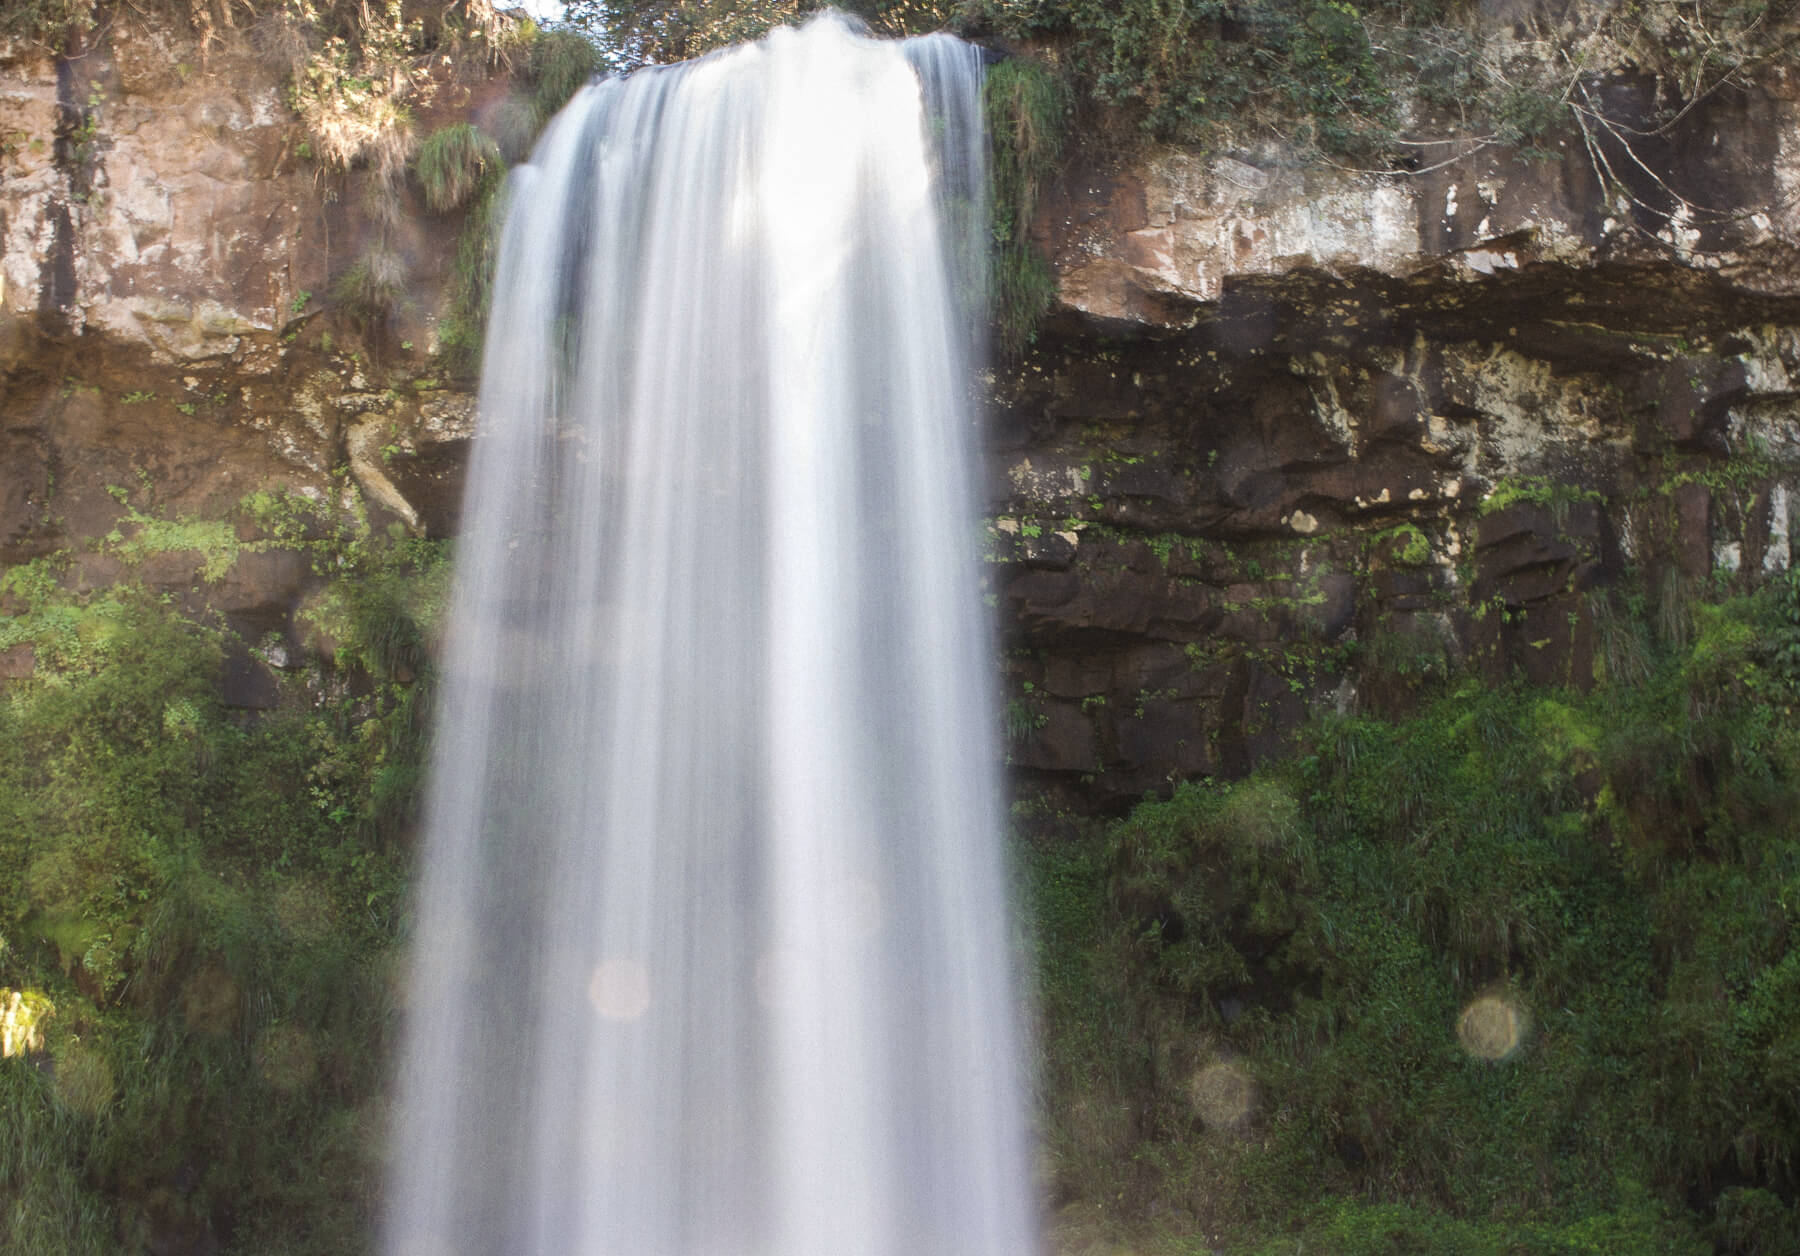 A waterfall falling from a cliff on the forest - Long shutter speed caused water to be very silky